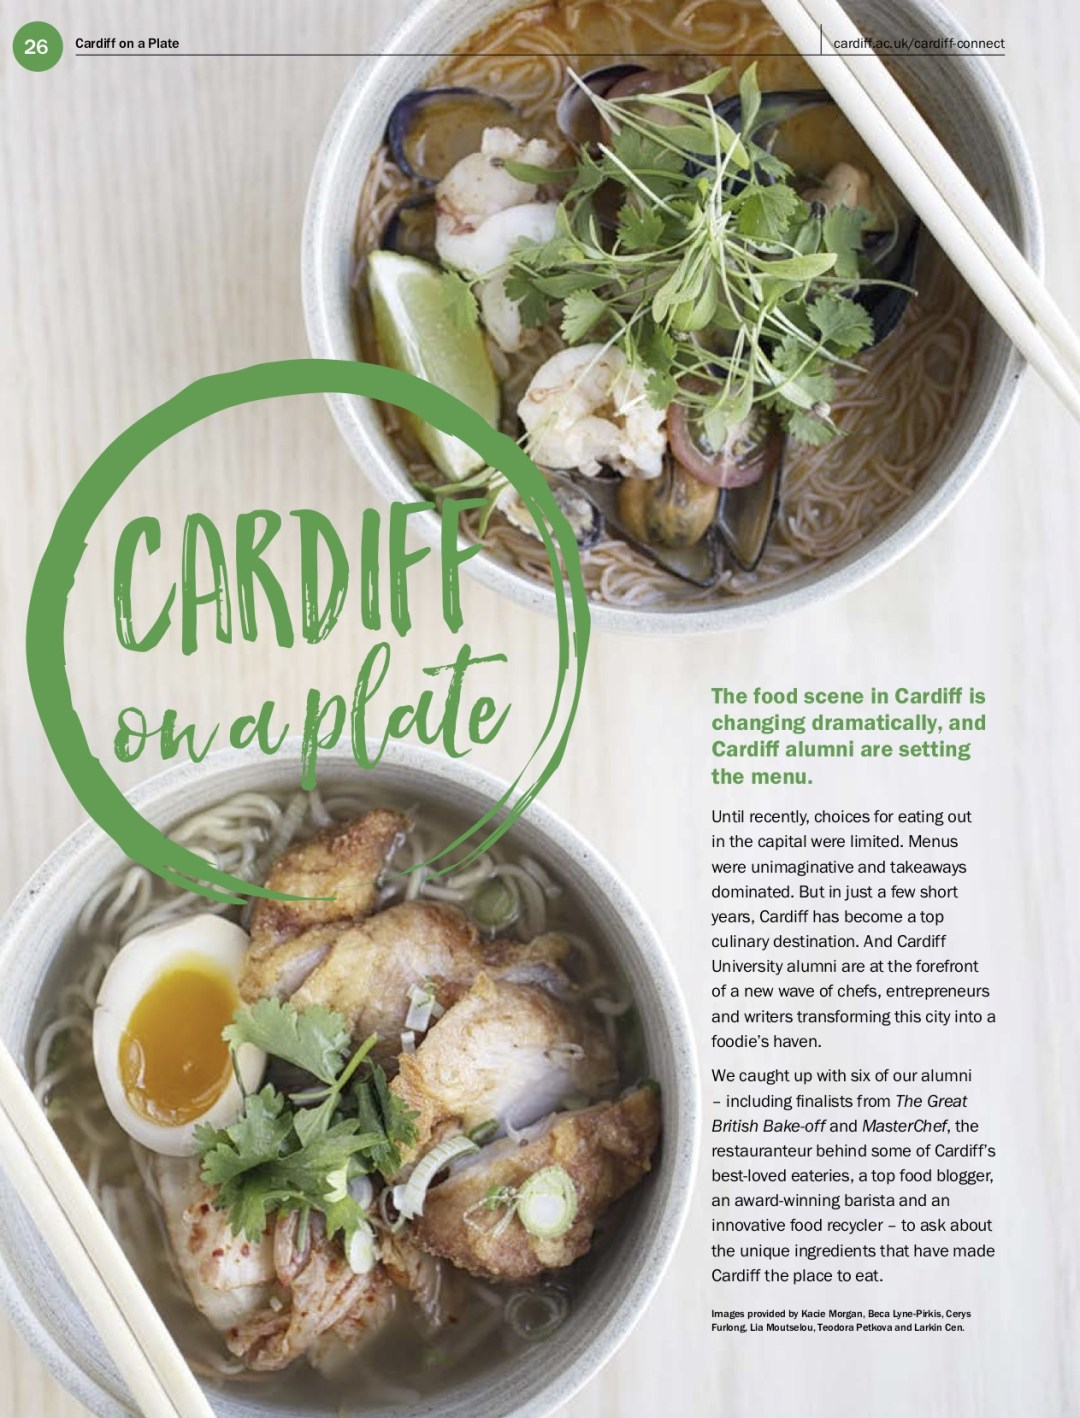 'Cardiff on a Plate': a feature published in Cardiff University's alumni magazine, Cardiff Connect in December 2018.